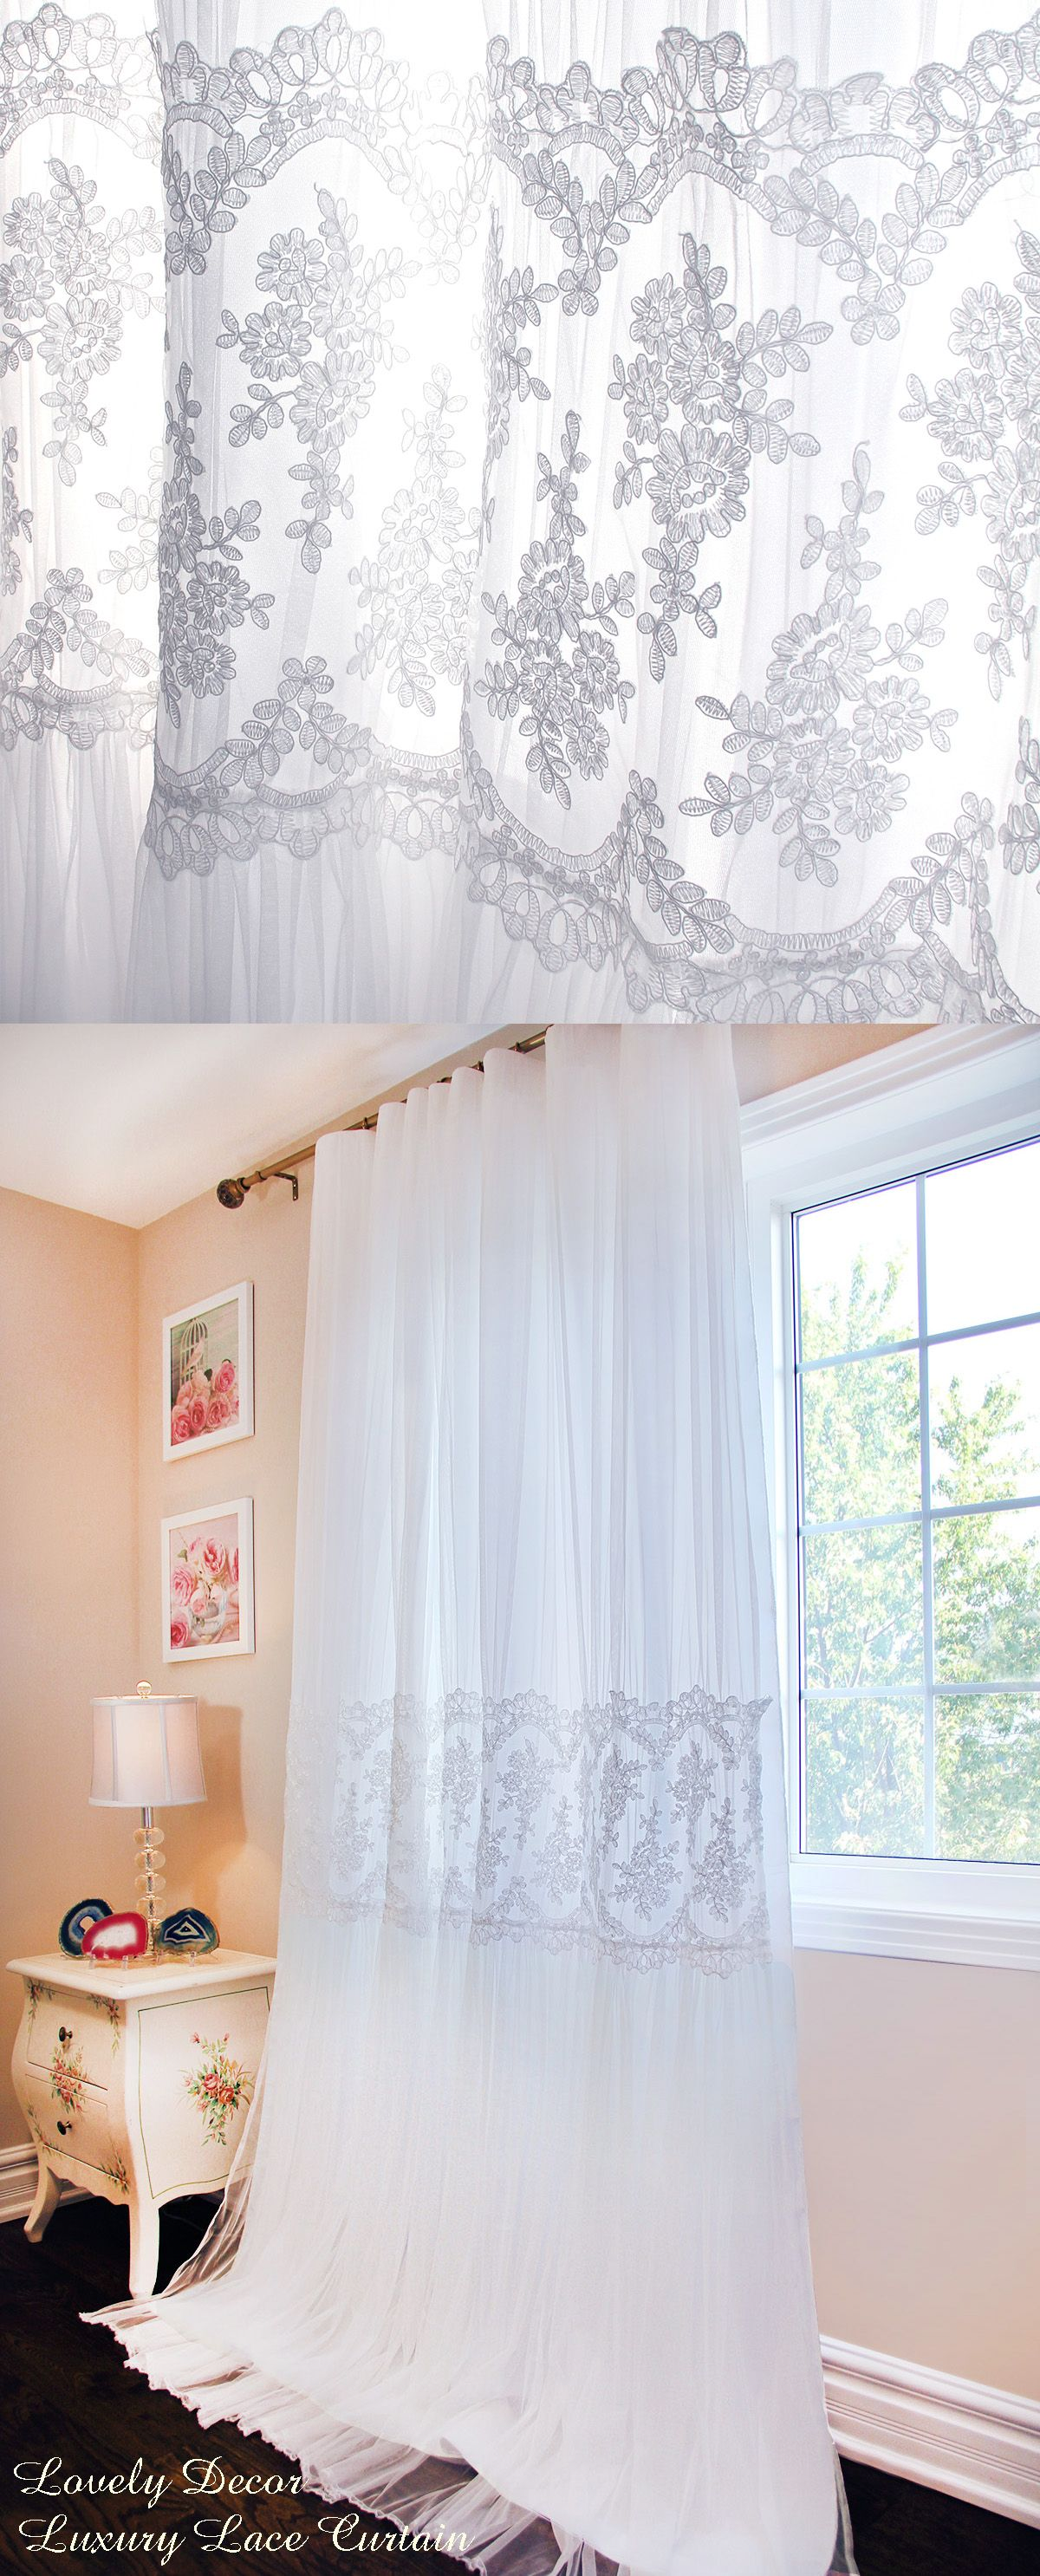 French Lace Curtains Luxury French Lace Curtain Panel In 2019 Home Decor Curtains